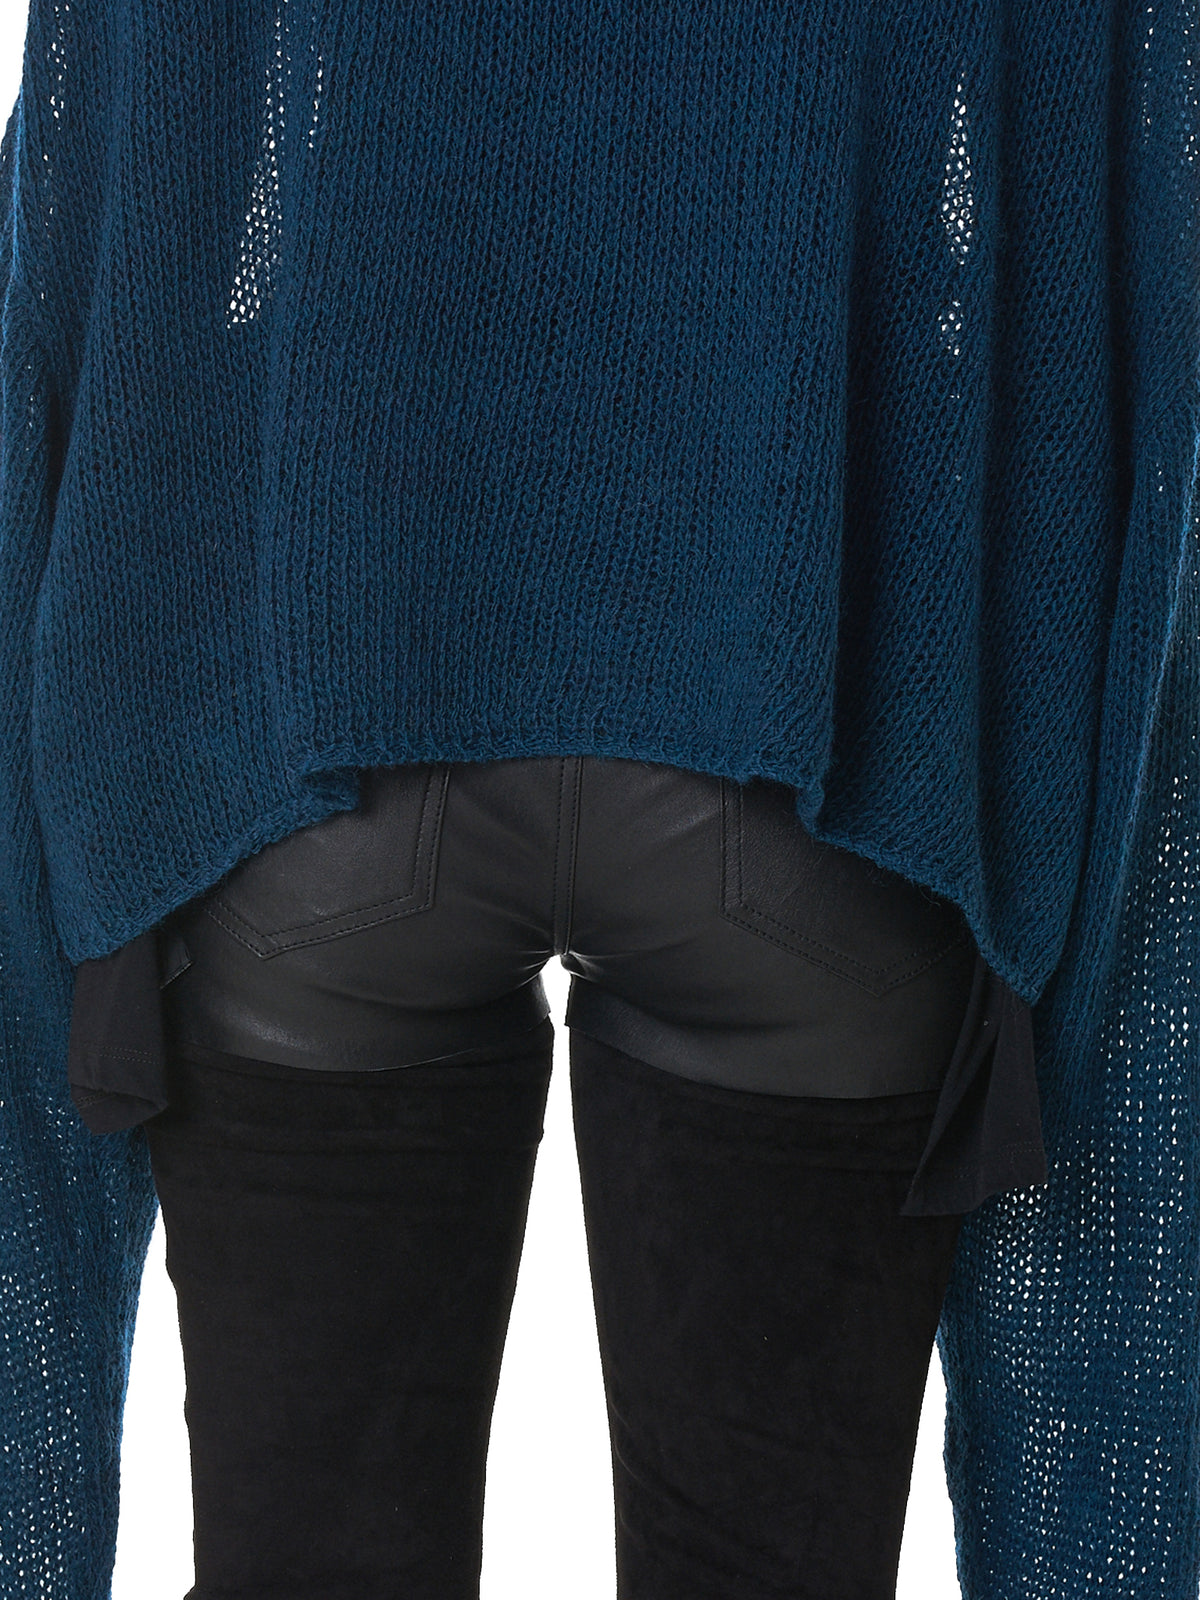 Unravel Turtleneck Sweater - Hlorenzo Detail 2